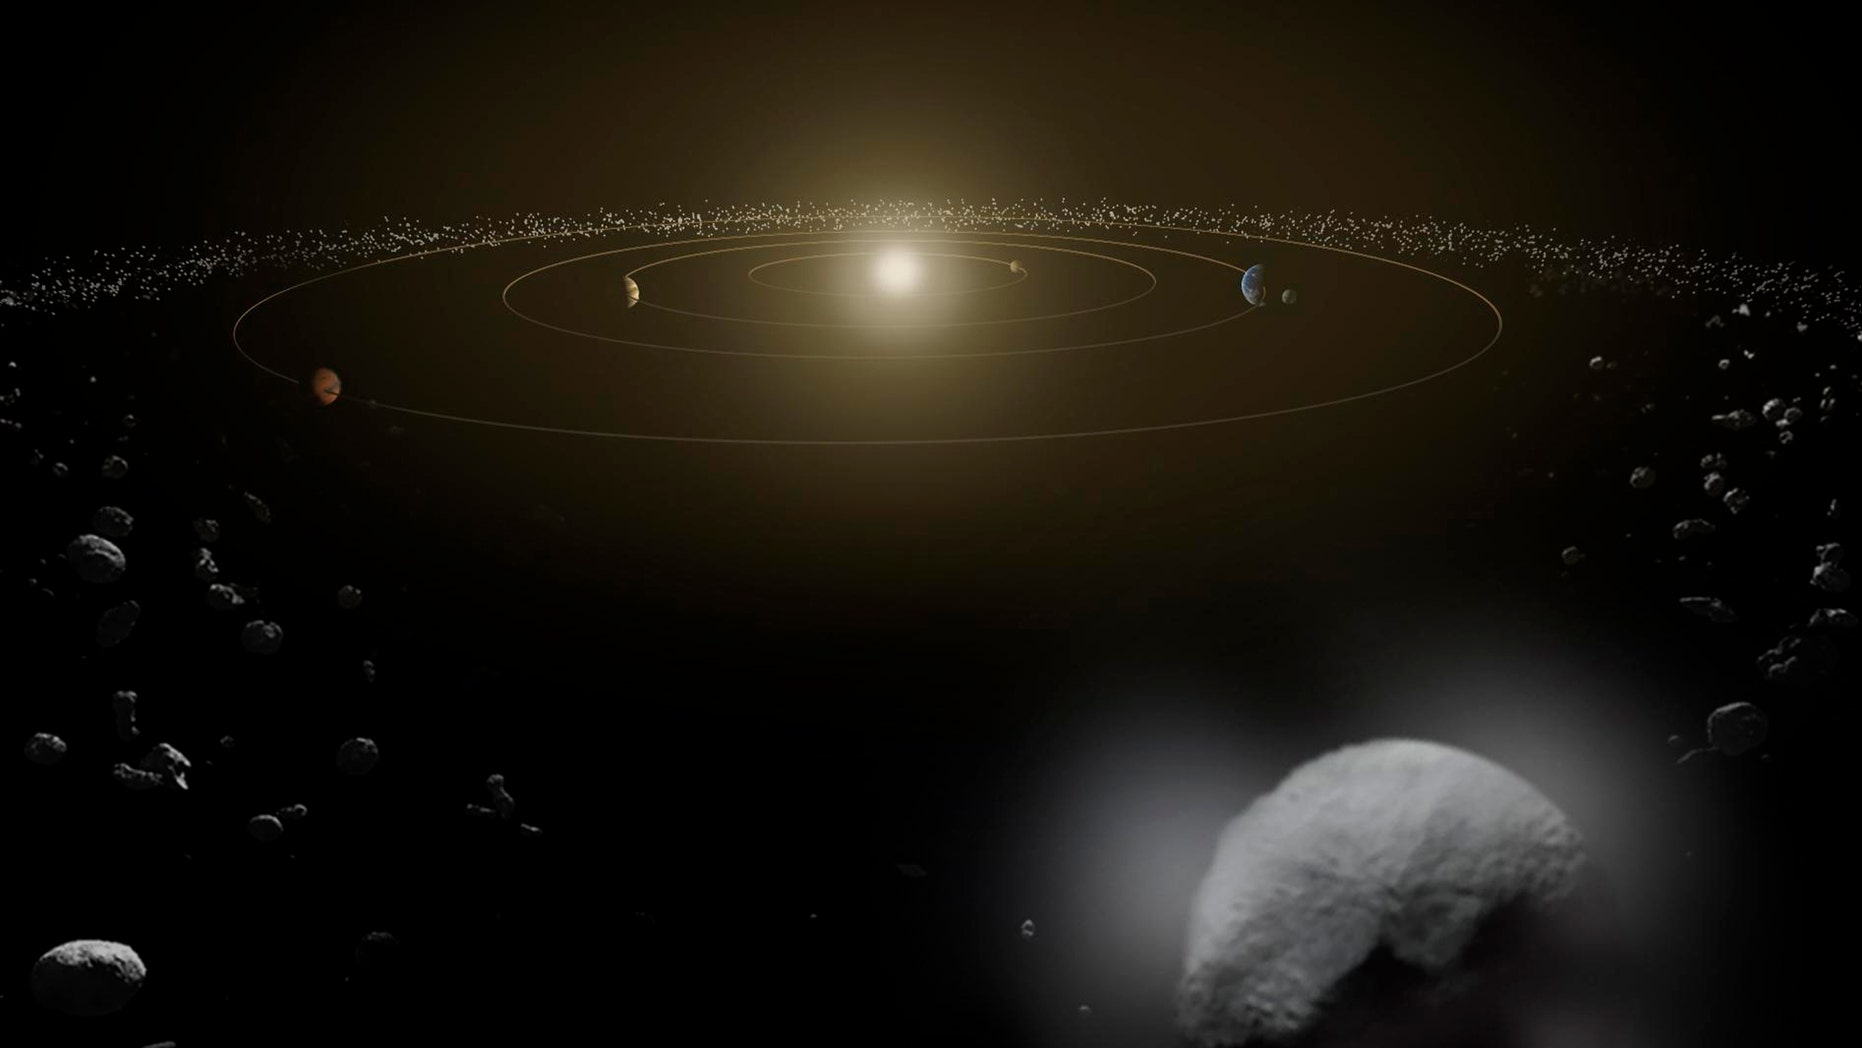 Dwarf planet Ceres is seen in the main asteroid belt, between the orbits of Mars and Jupiter, as illustrated in this undated artist's conception released by NASA.